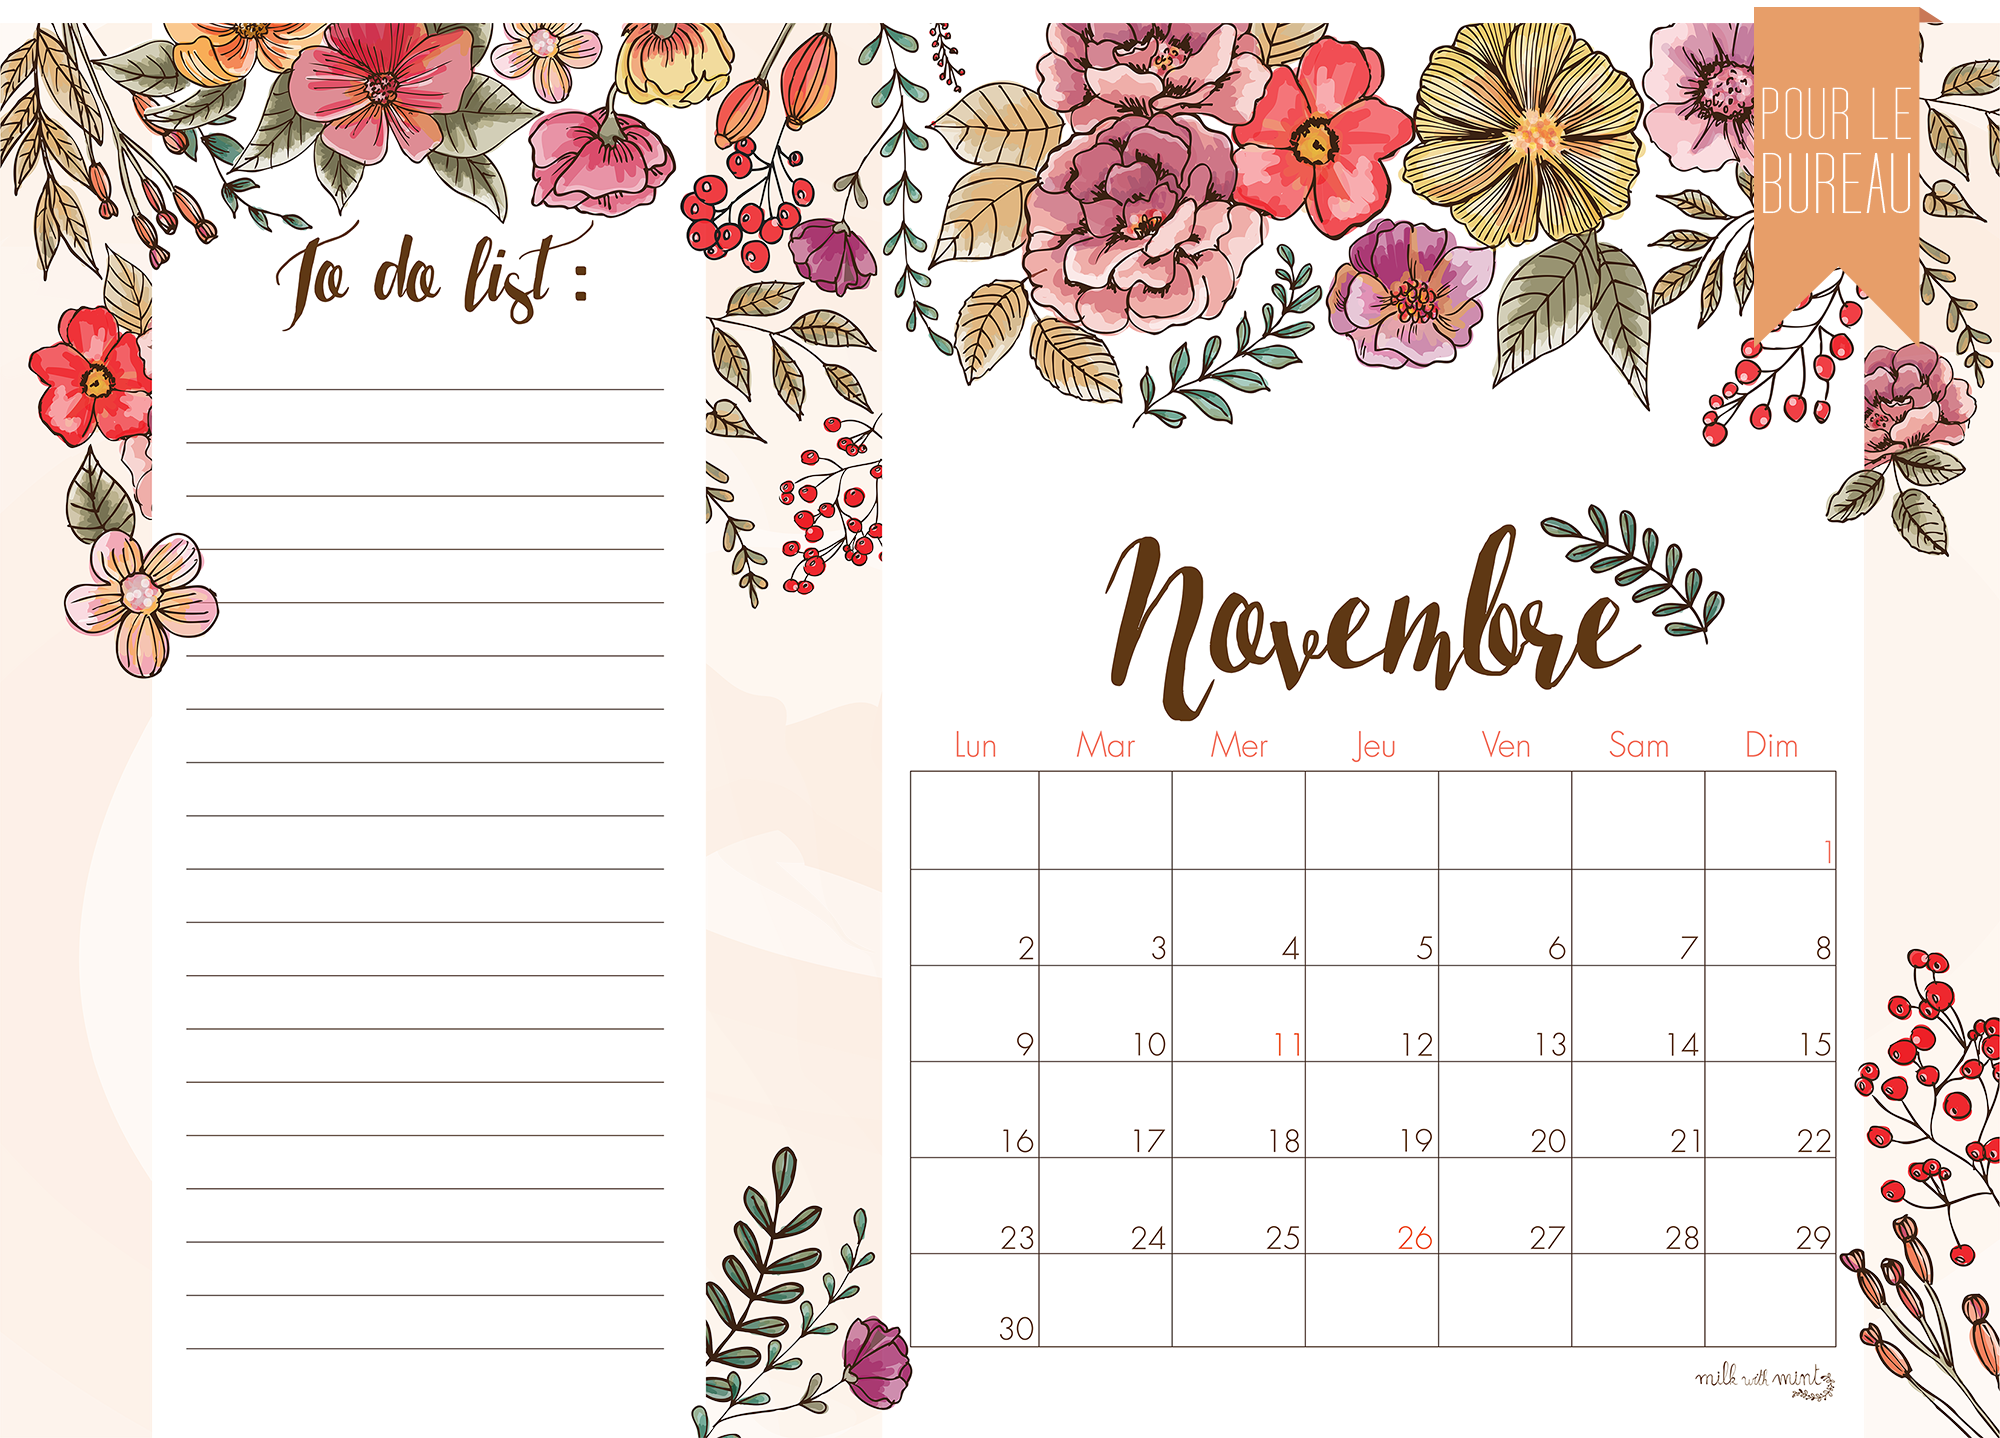 CALENDRIER-NOV-PRINTABLE SIT